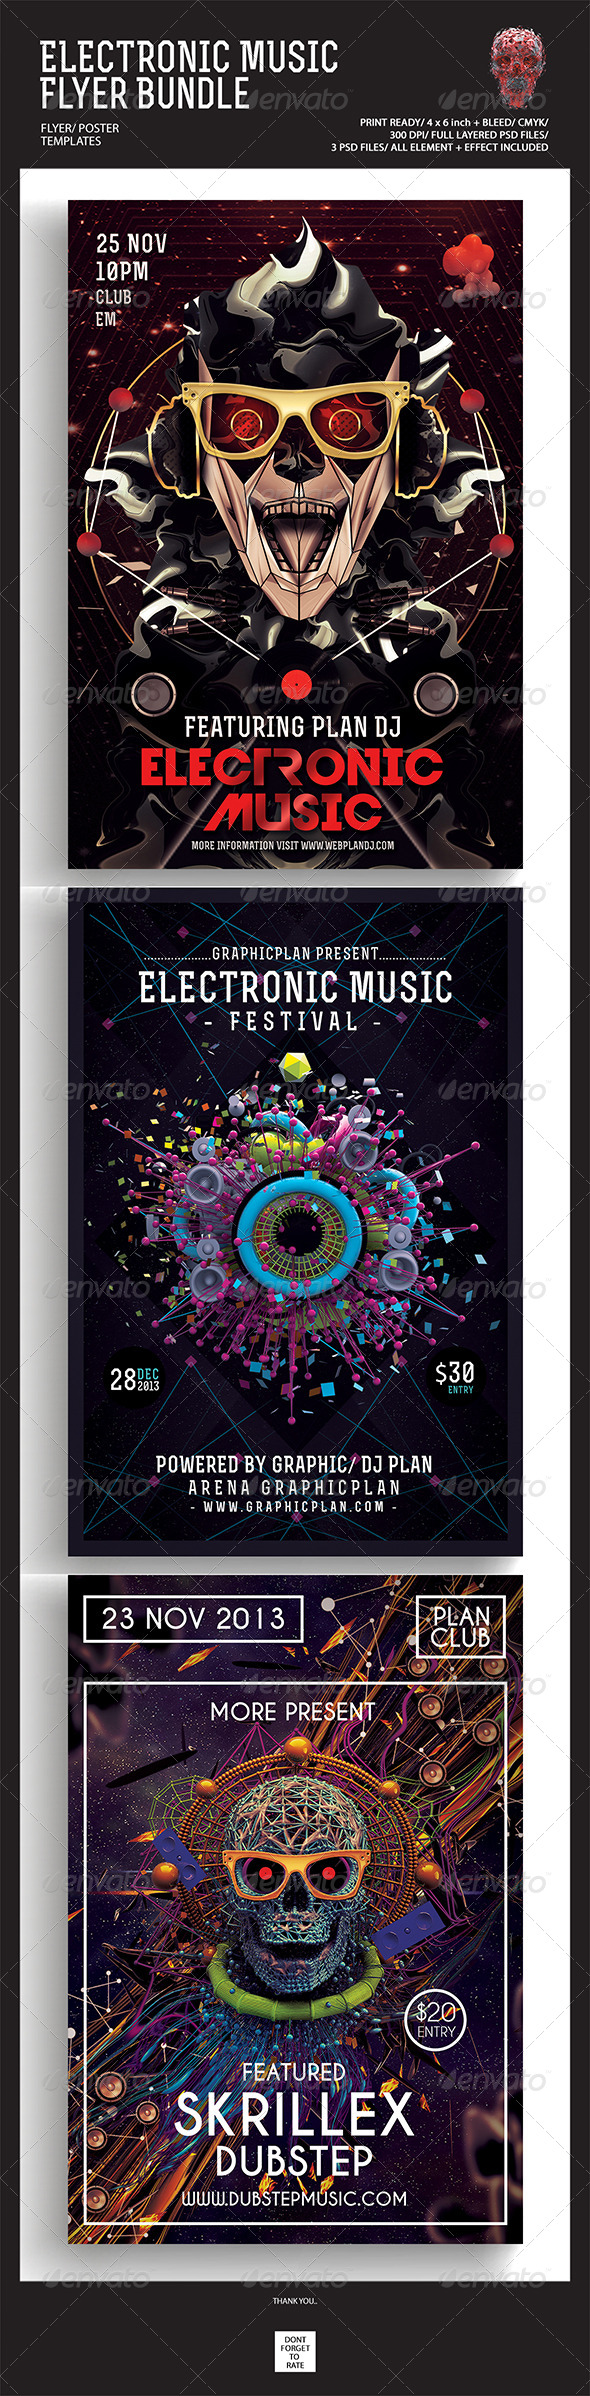 GraphicRiver Electronic Music Flyer Poster Bundle 5125896